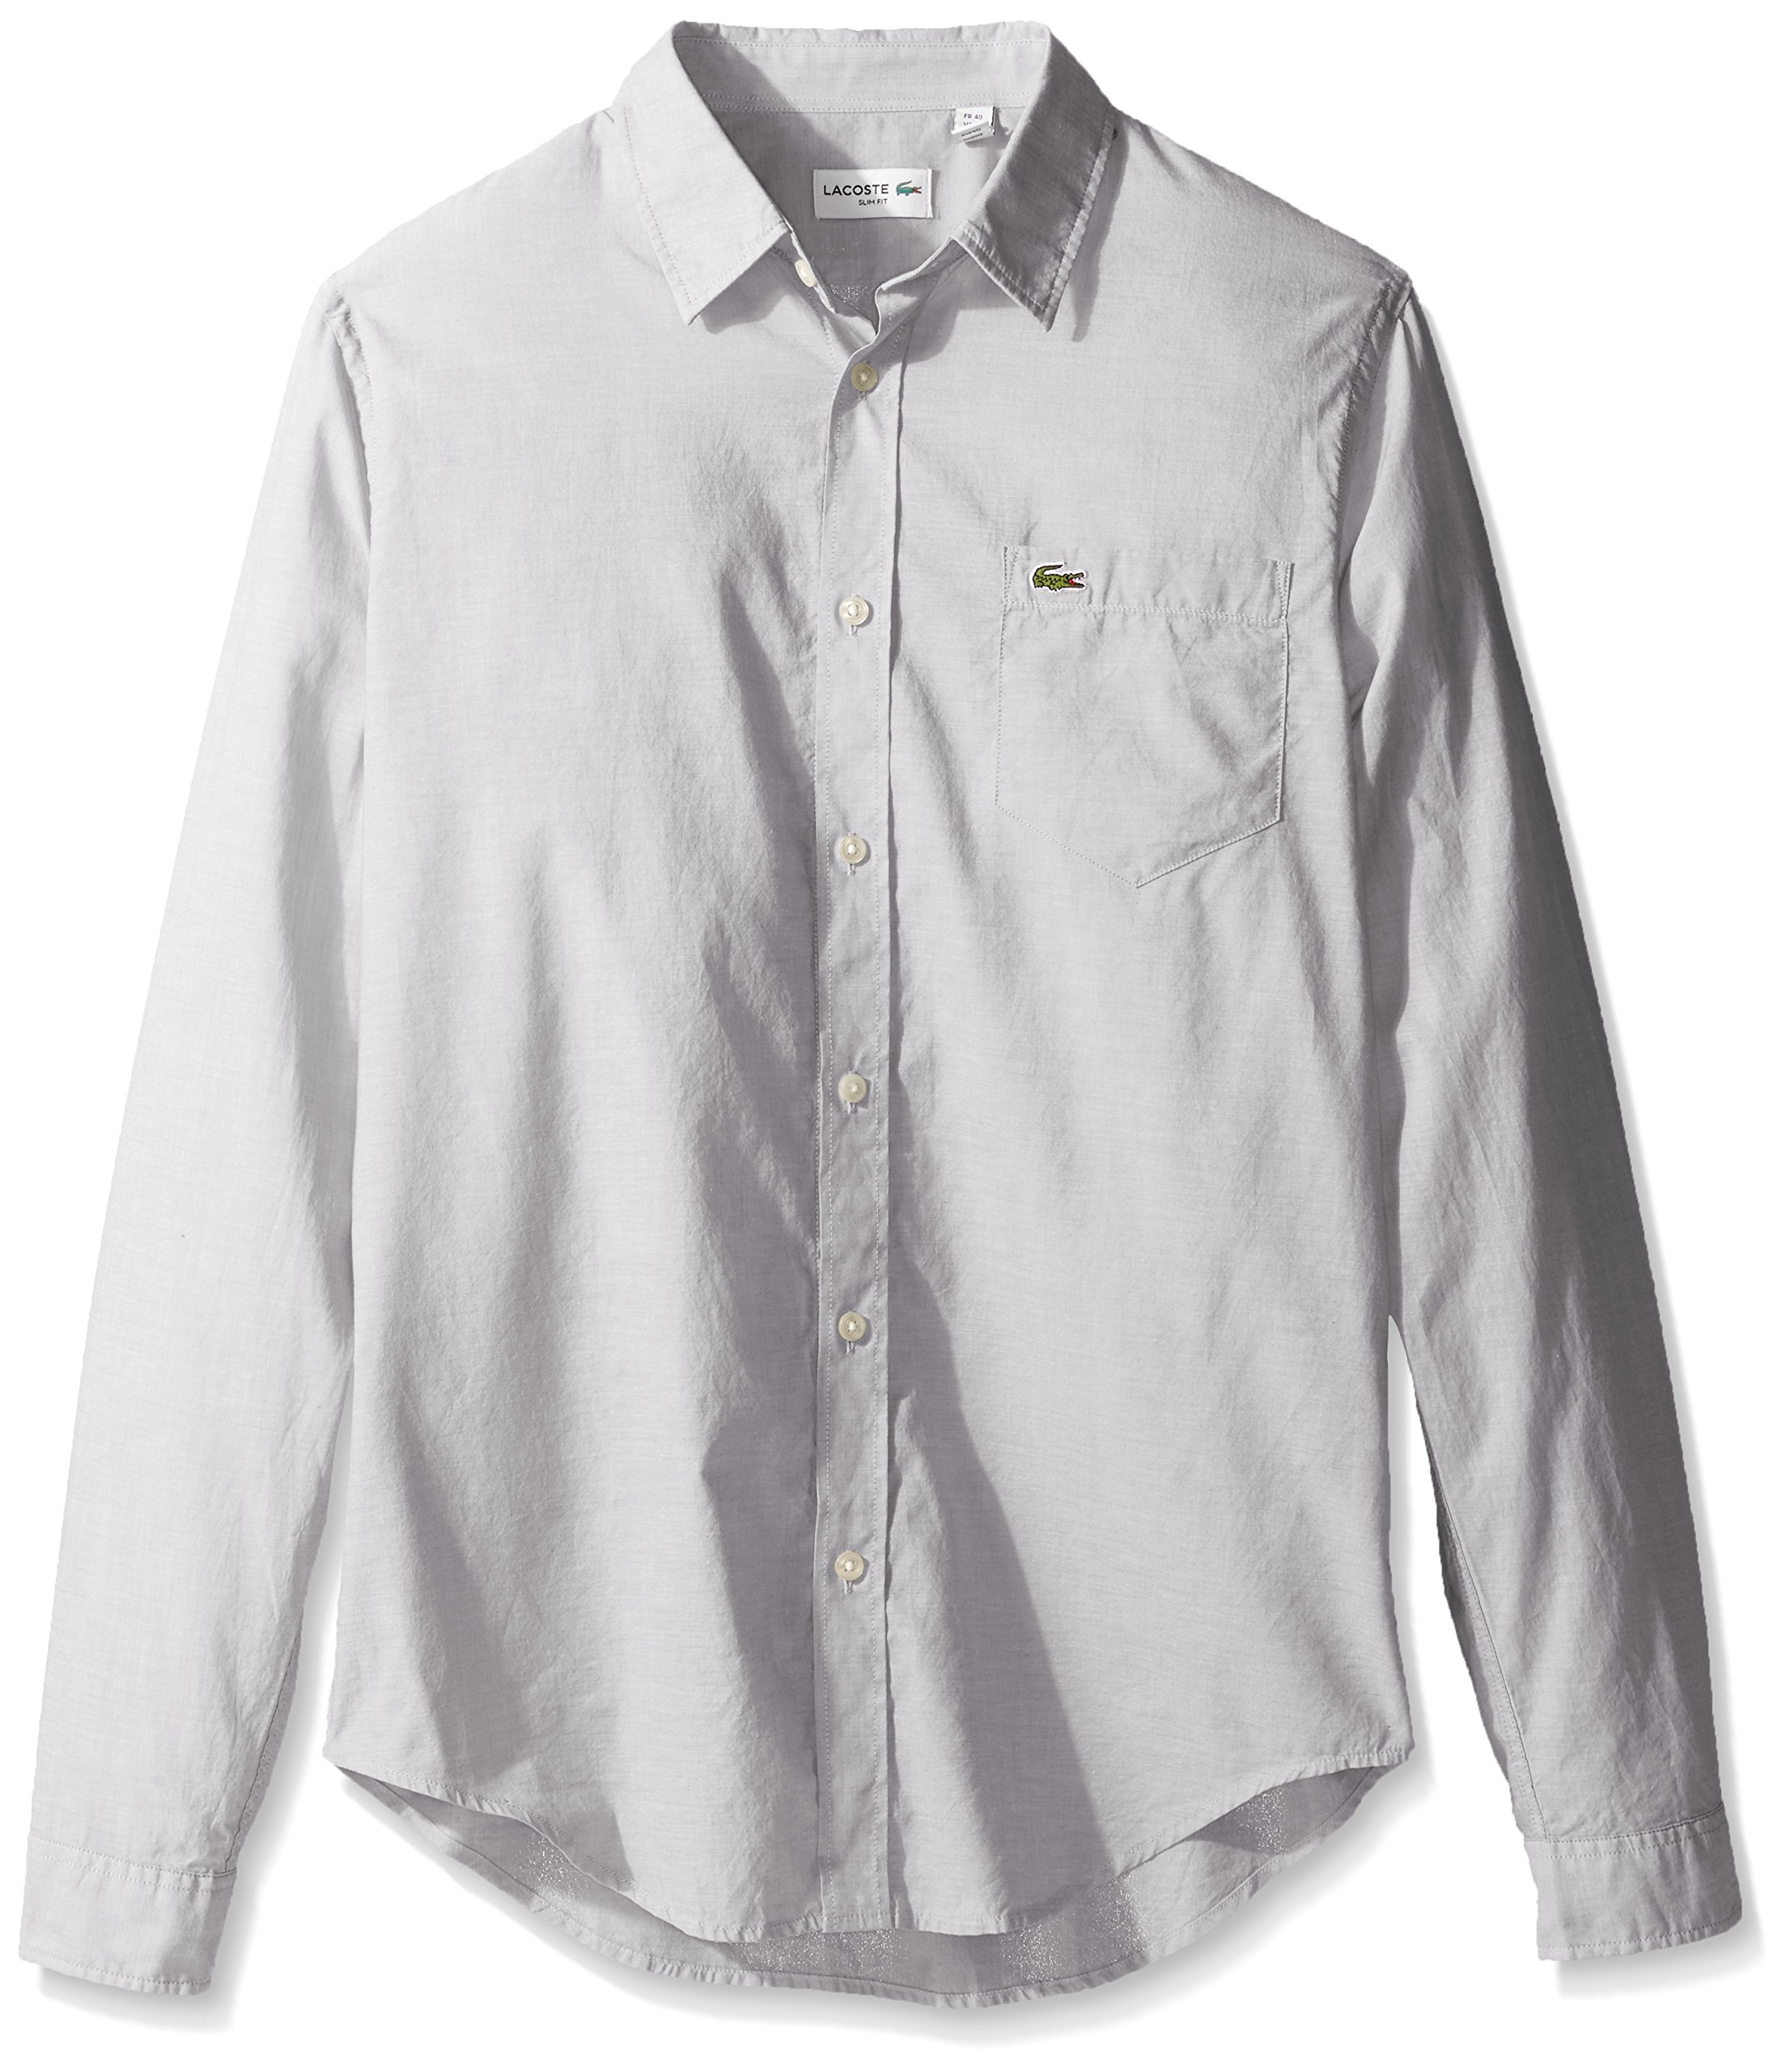 Lacoste Men's Long Sleeve Cotton Voile Slim Fit Woven Shirt, CH3937-51, Shadow/White, 38